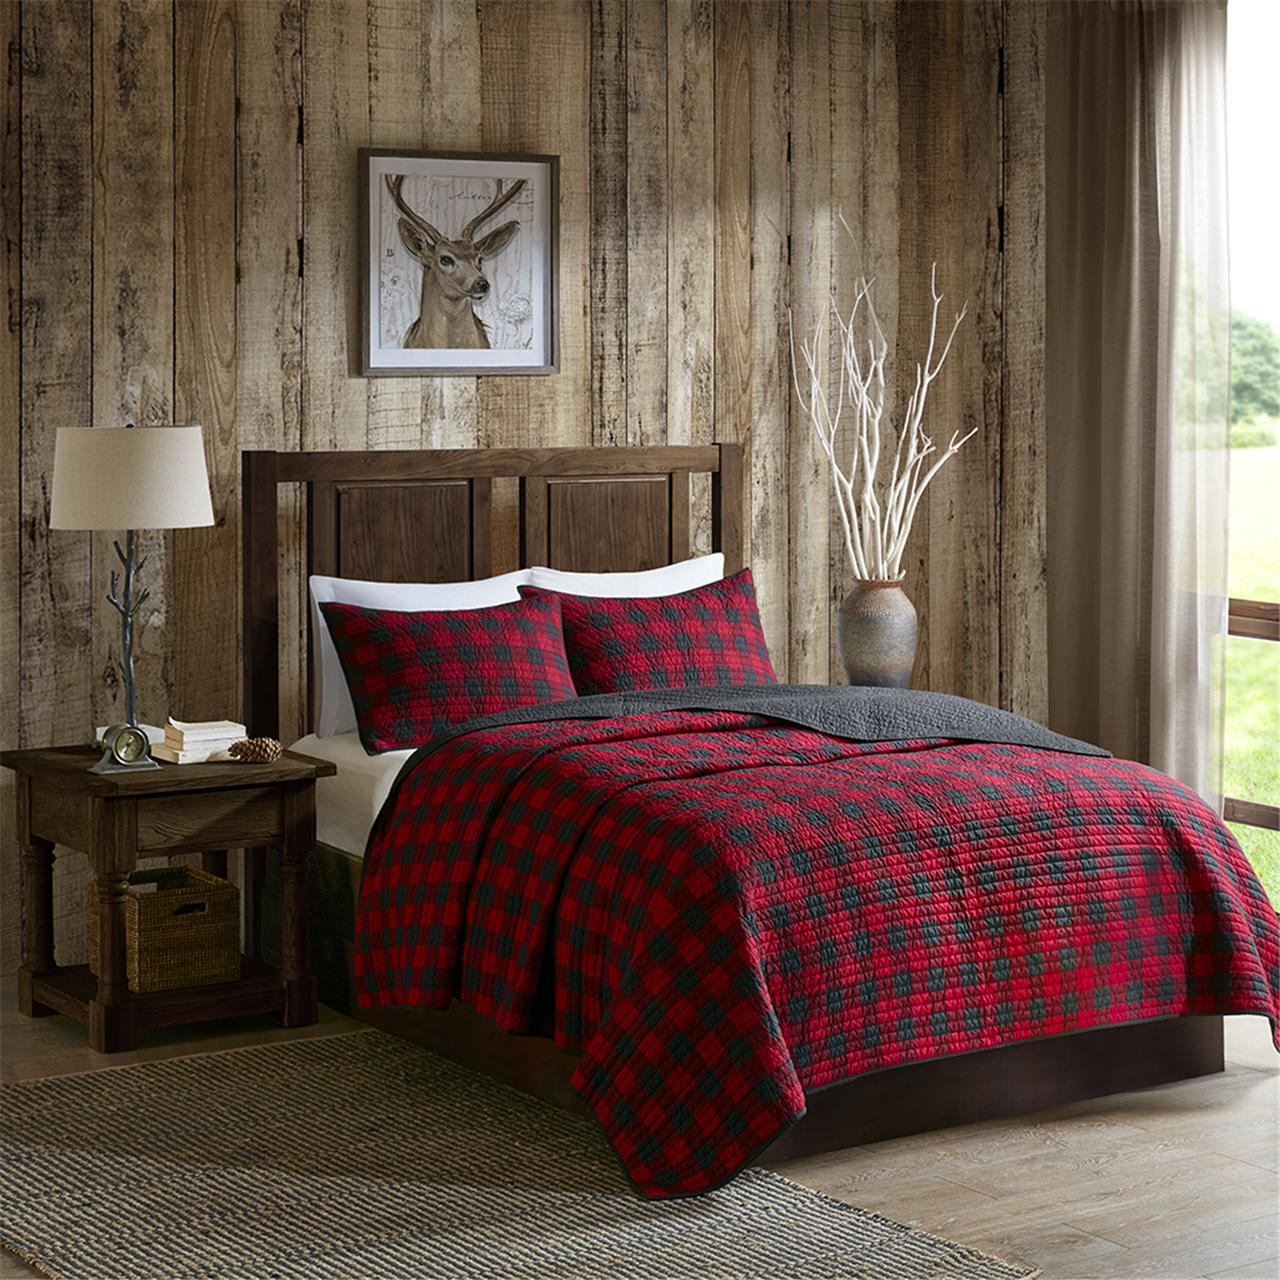 Western Bed Spreads